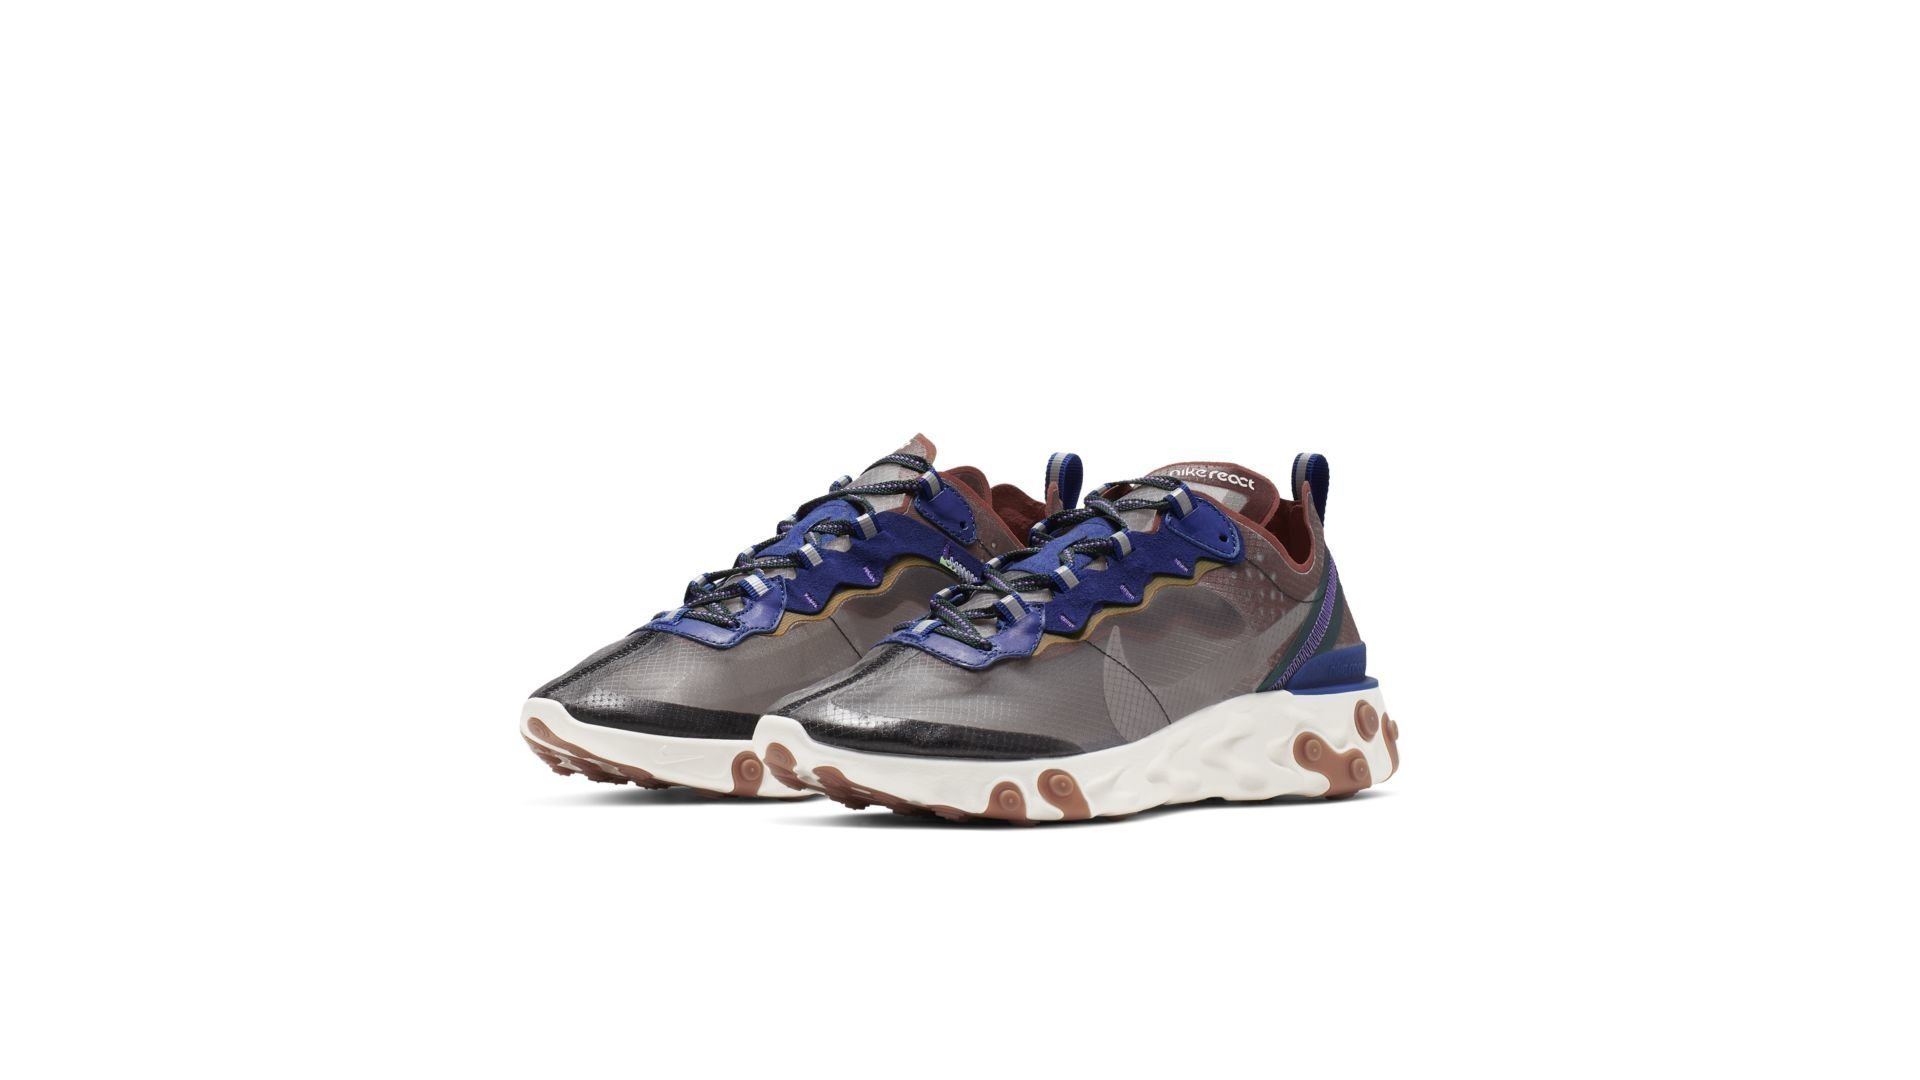 Nike React Element 87 'Dusty Peach' (AQ1090-200)